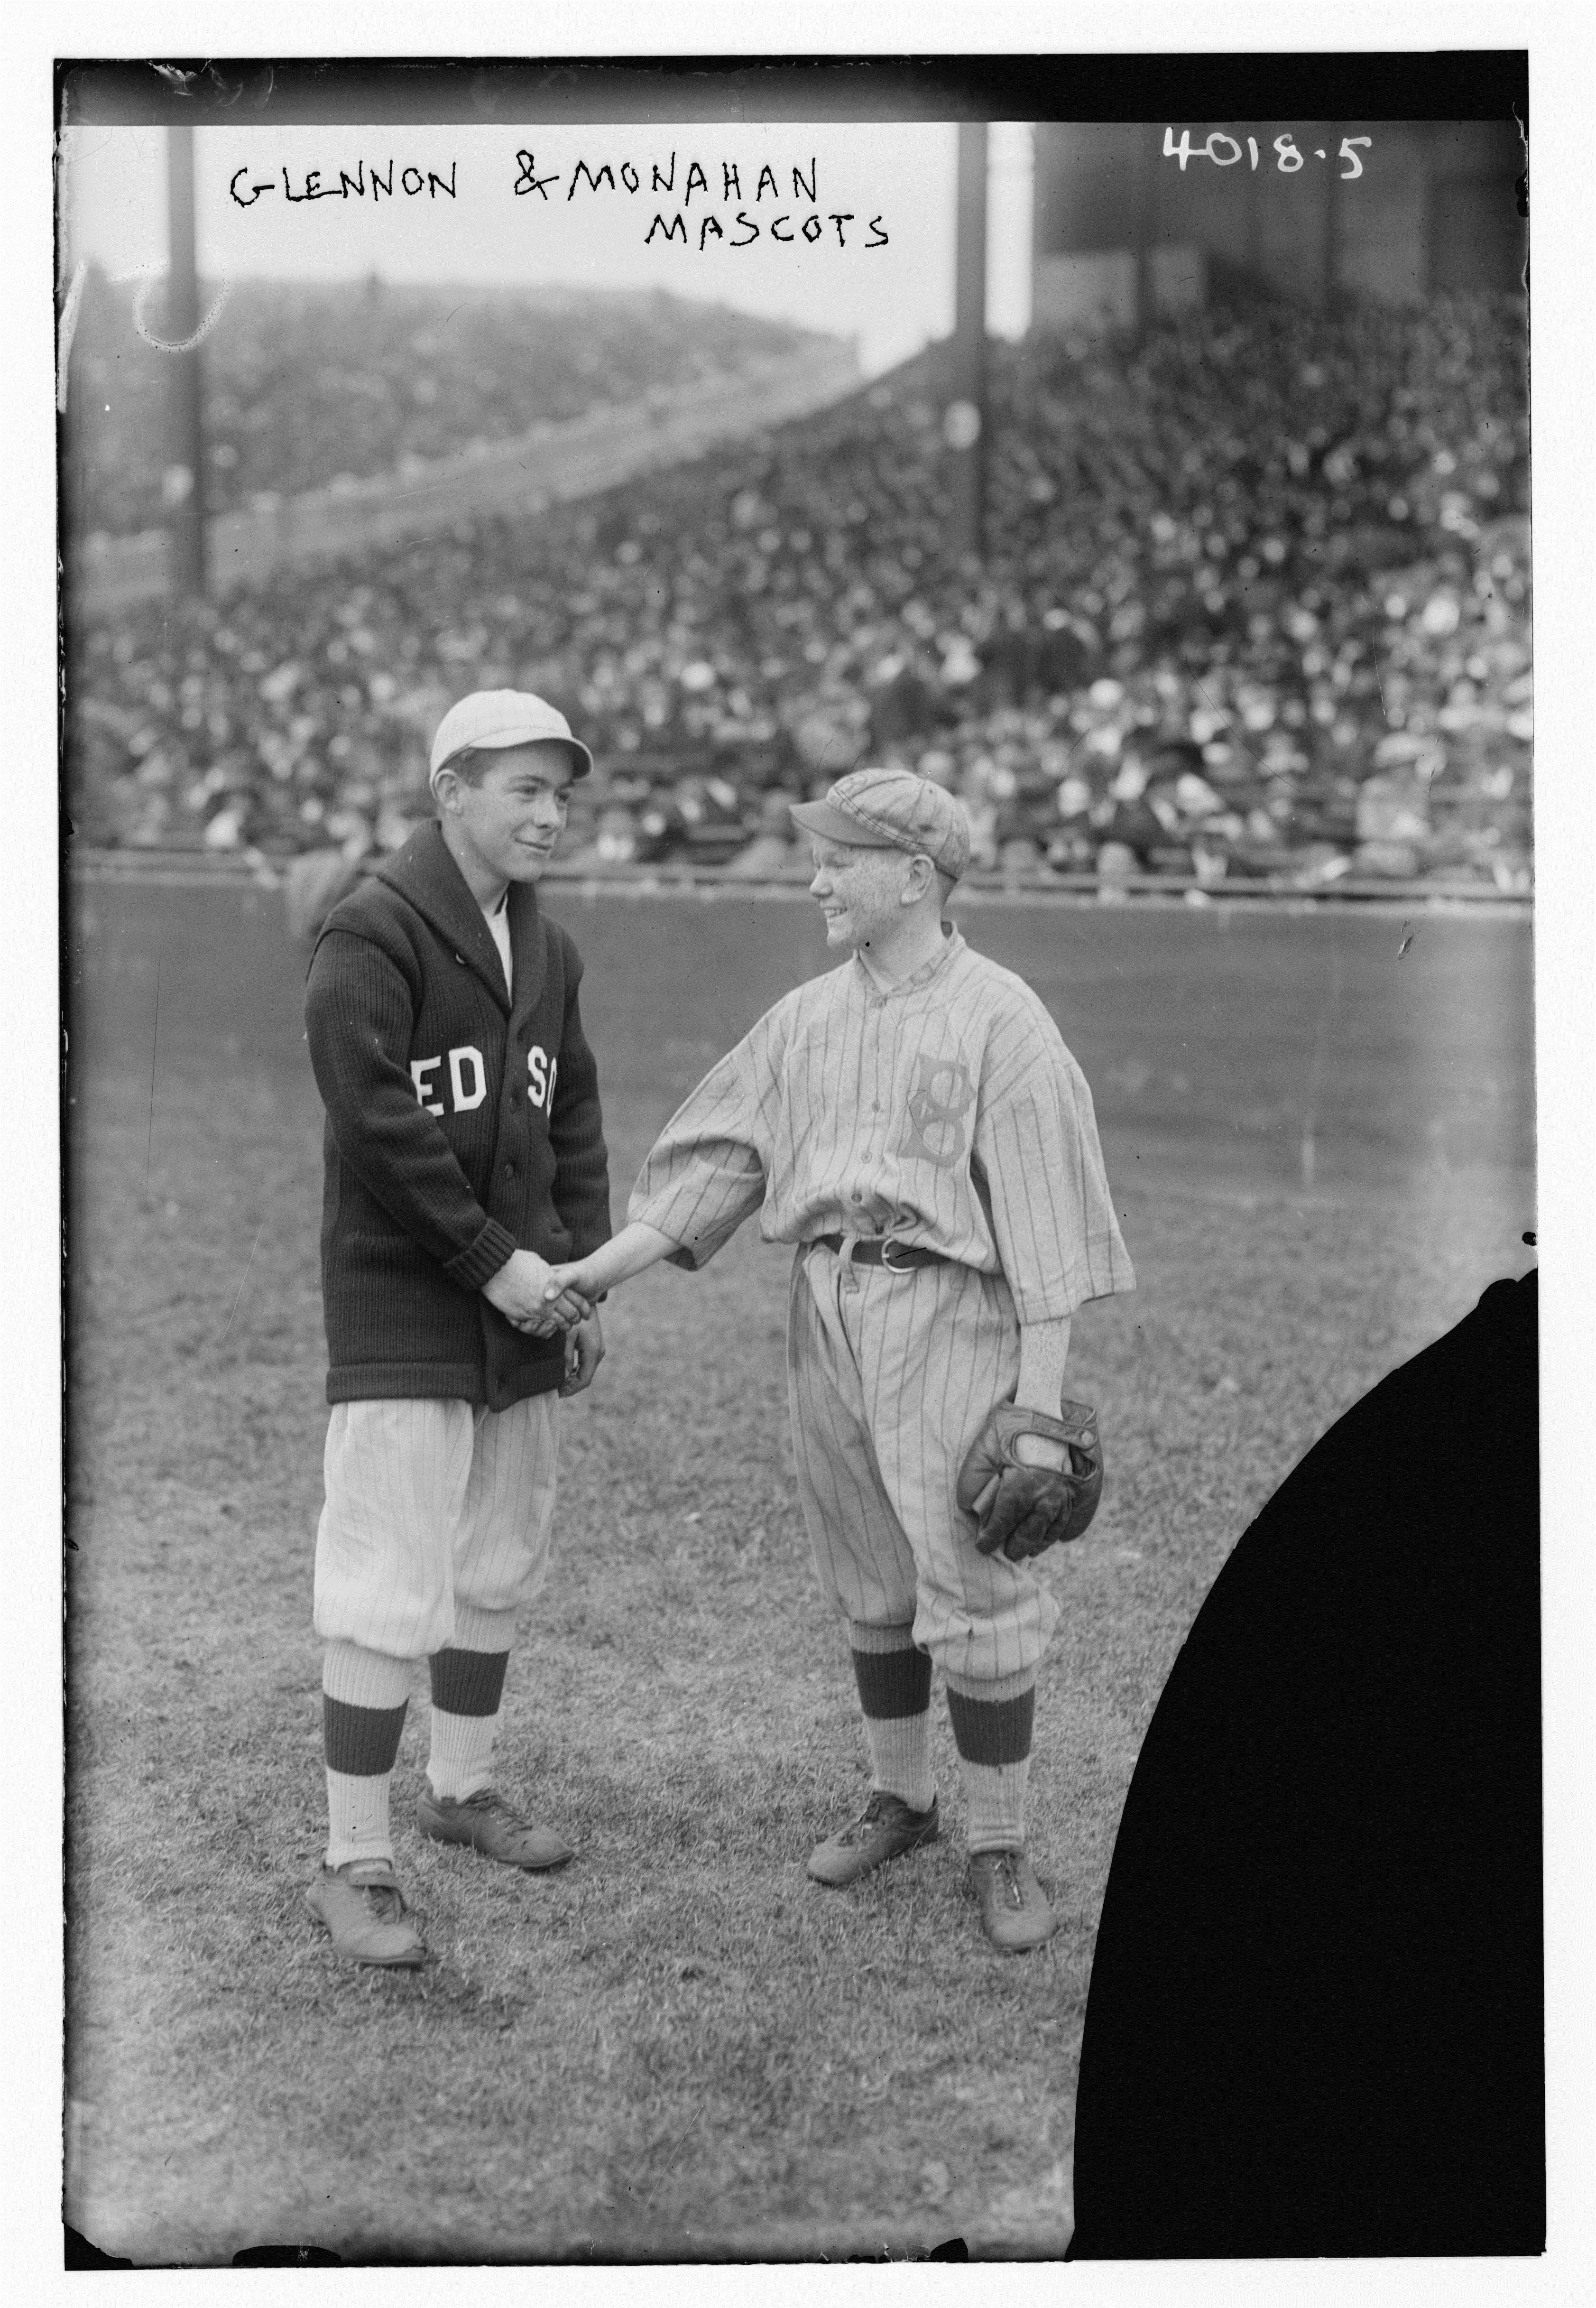 Red Sox faced Dodgers' ancestor in 1916 World Series